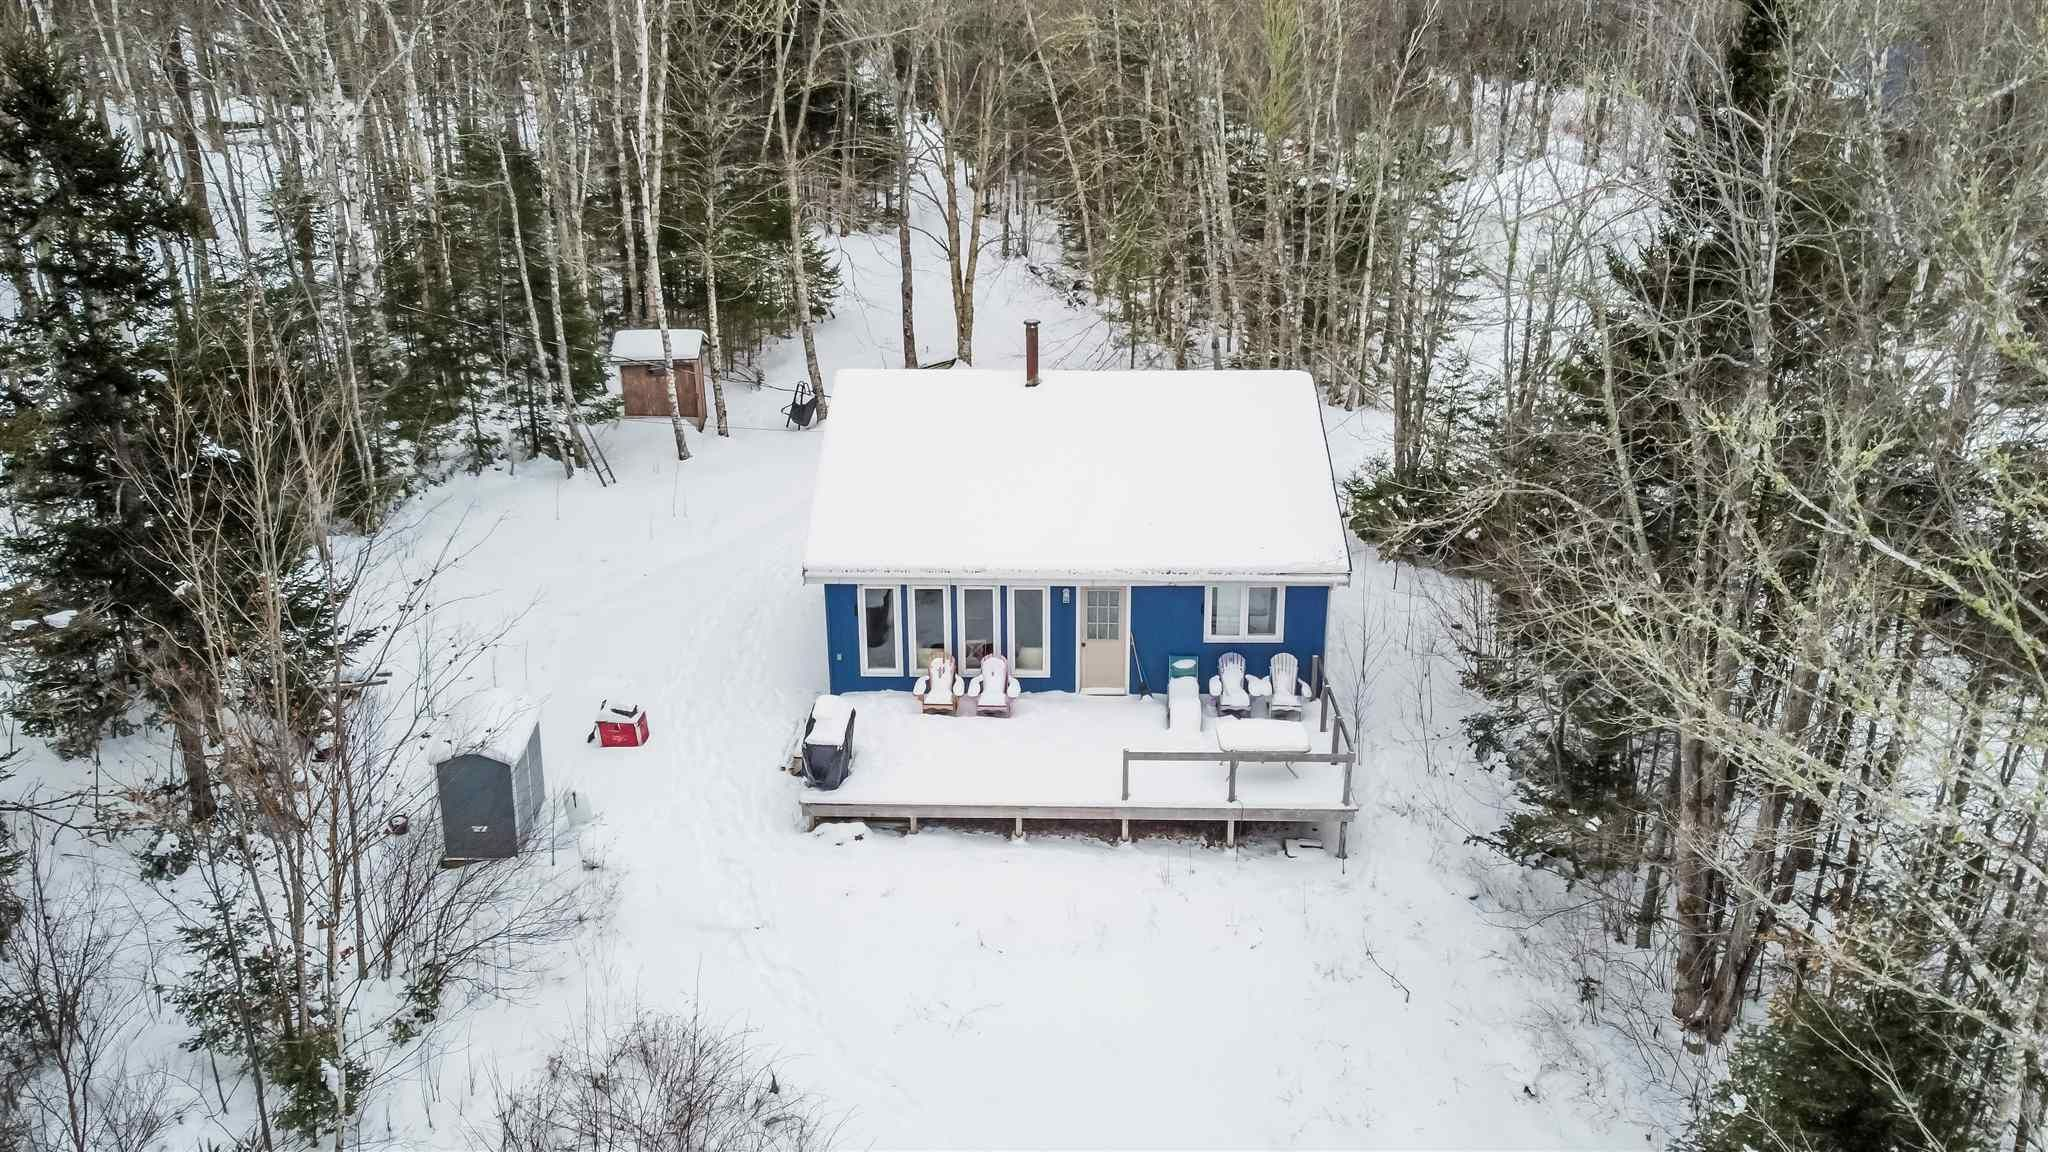 Main Photo: 164 Black Duck Lake Road in East Dalhousie: 404-Kings County Residential for sale (Annapolis Valley)  : MLS®# 202101648